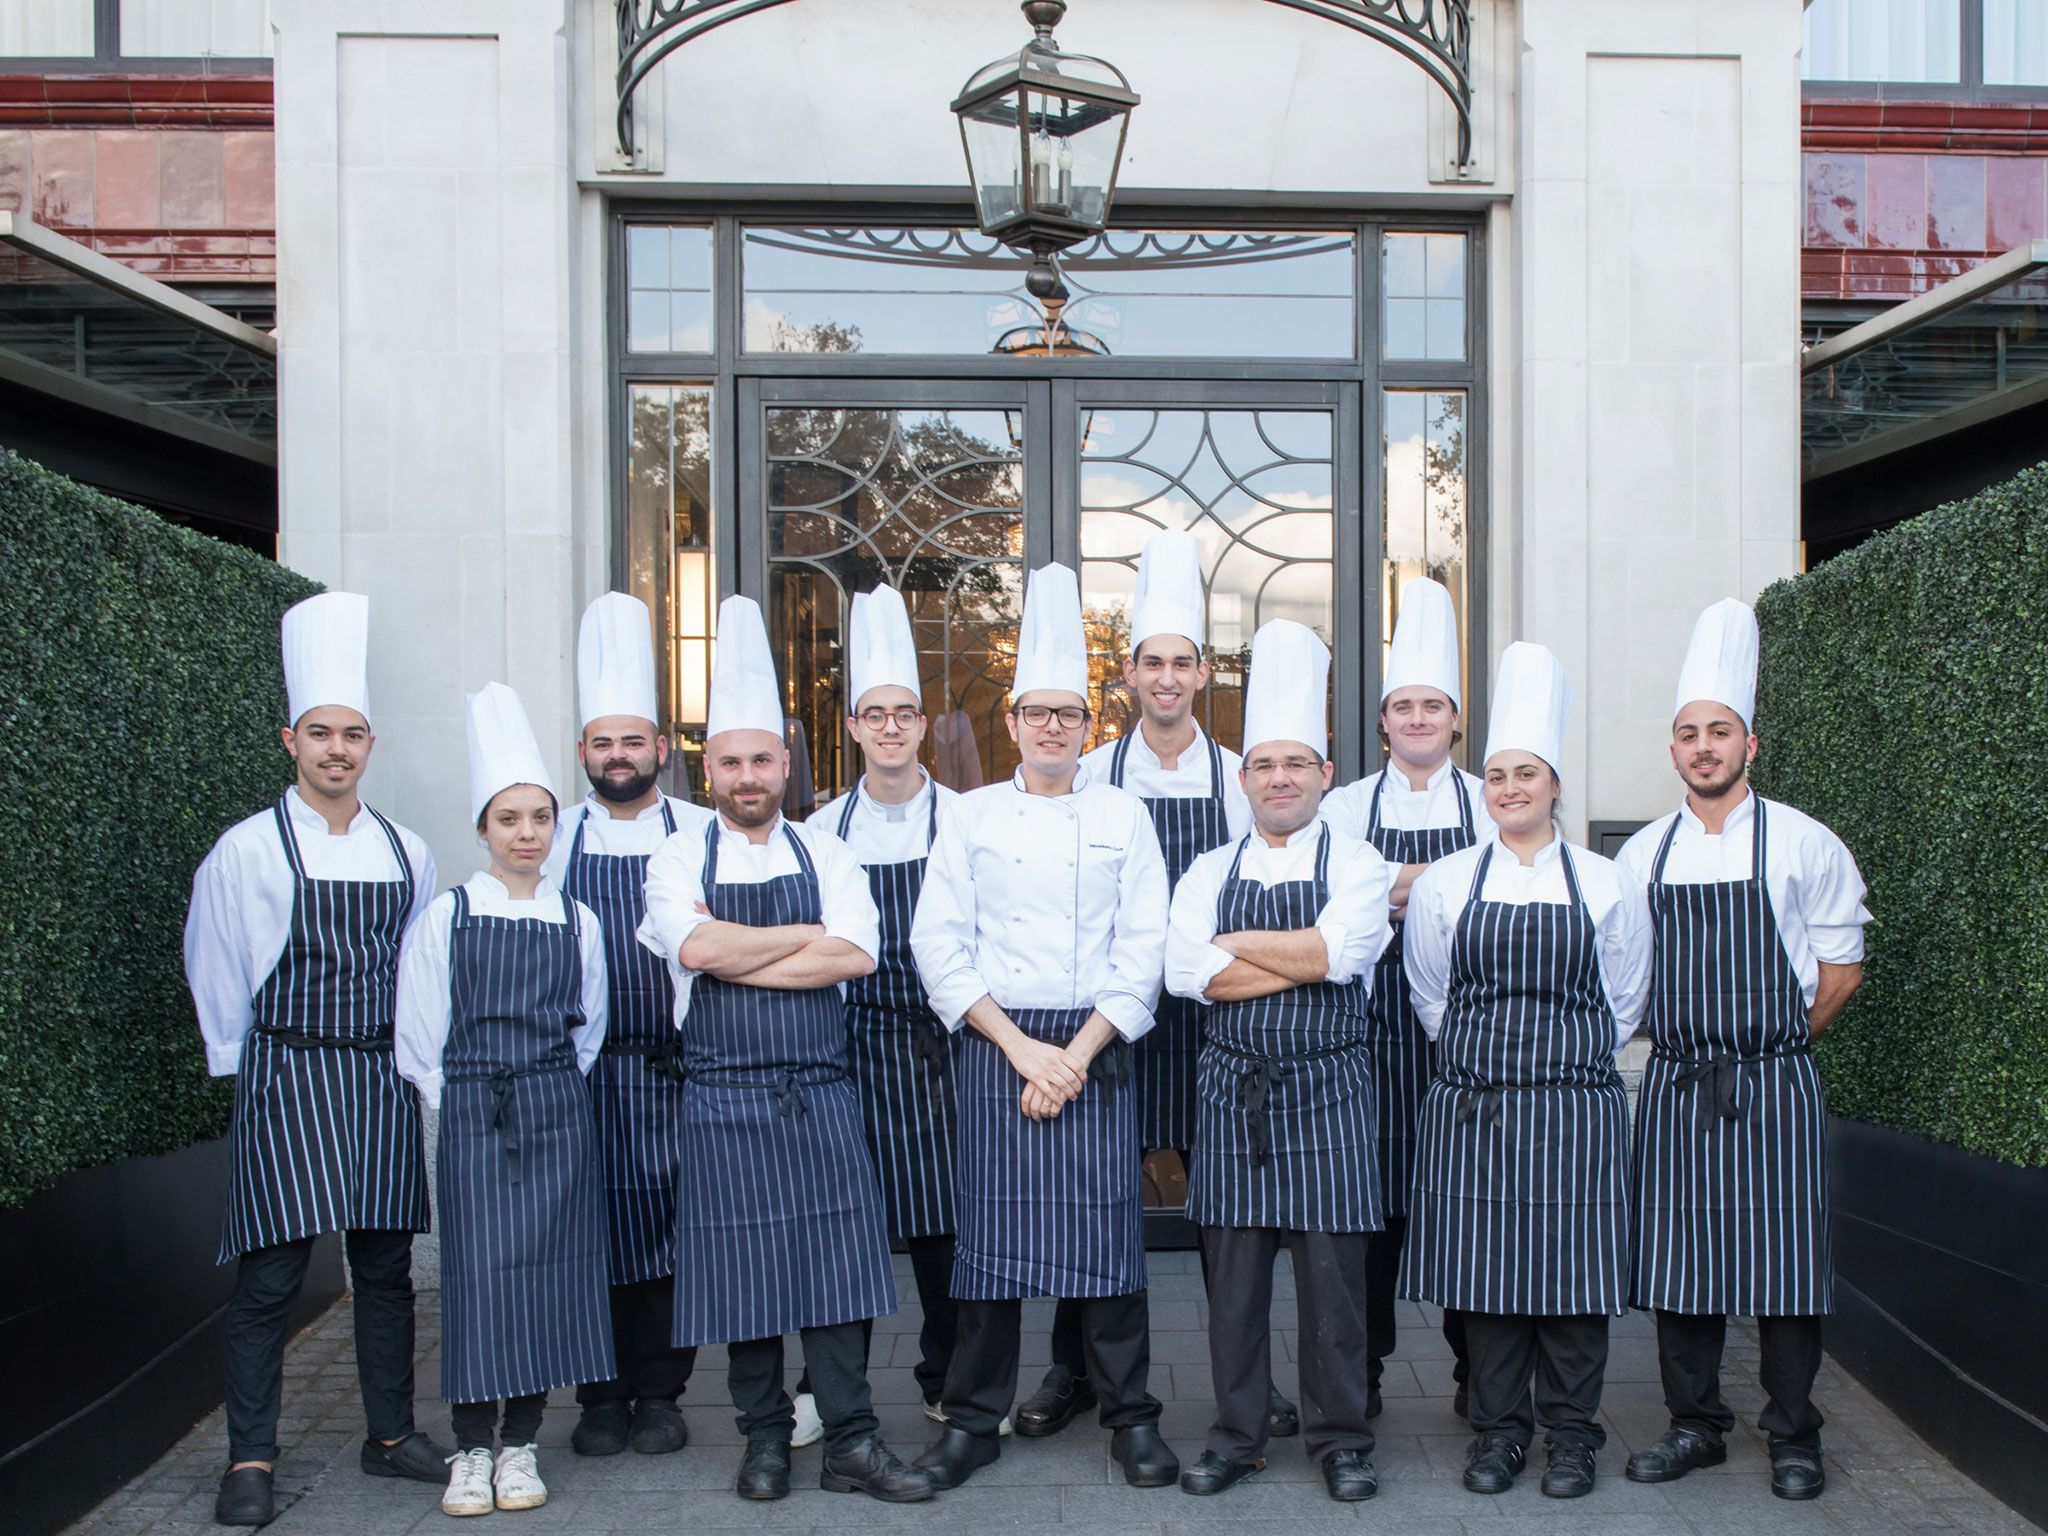 The Wellesley Restaurant Team